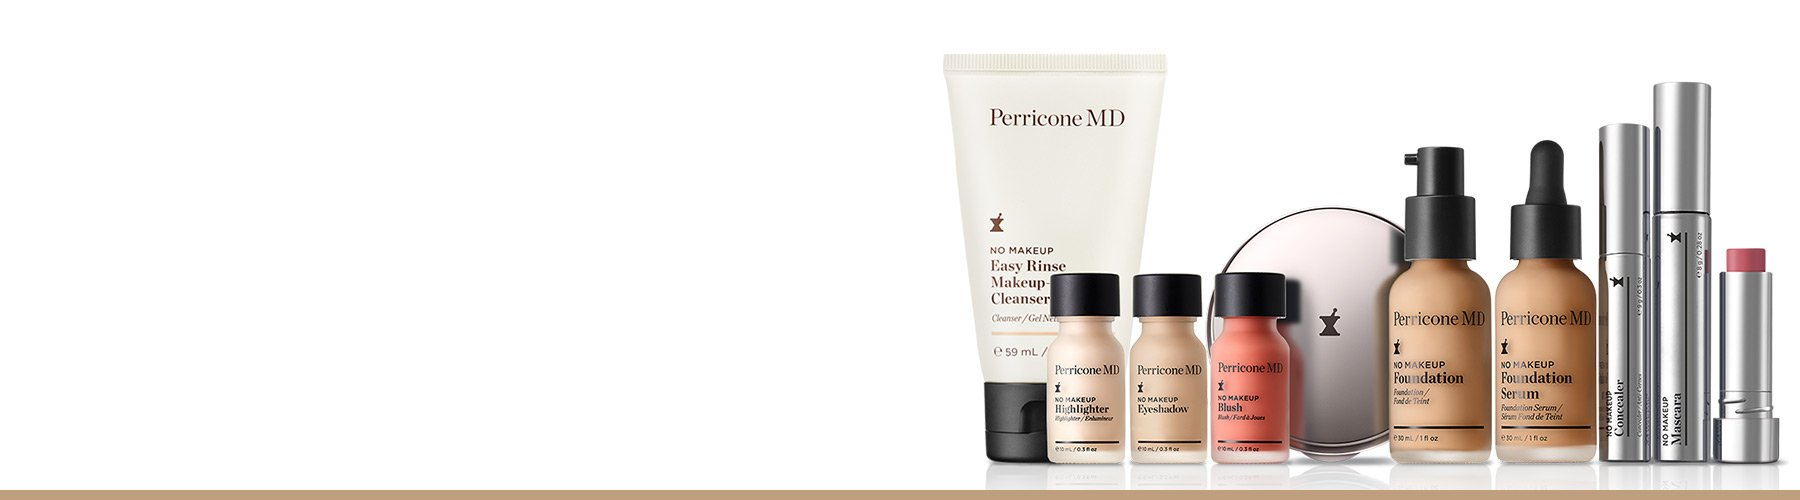 Shop All No Makeup Perricone MD